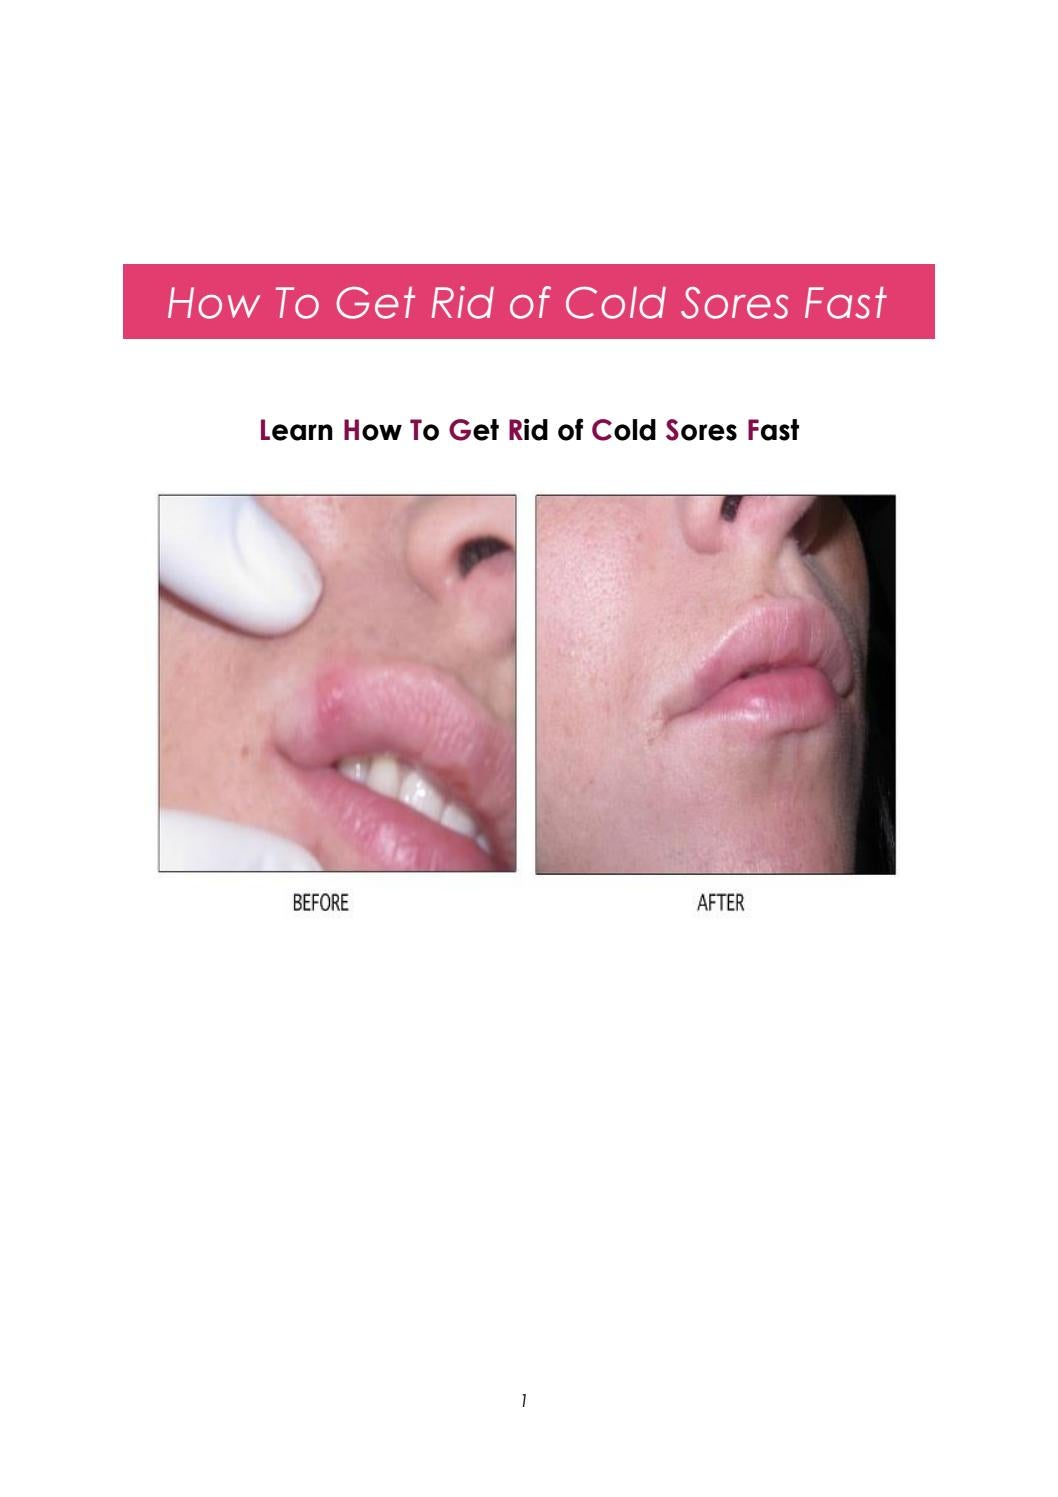 How to get rid of cold sores fast 2018 by mohcinesi issuu ccuart Images